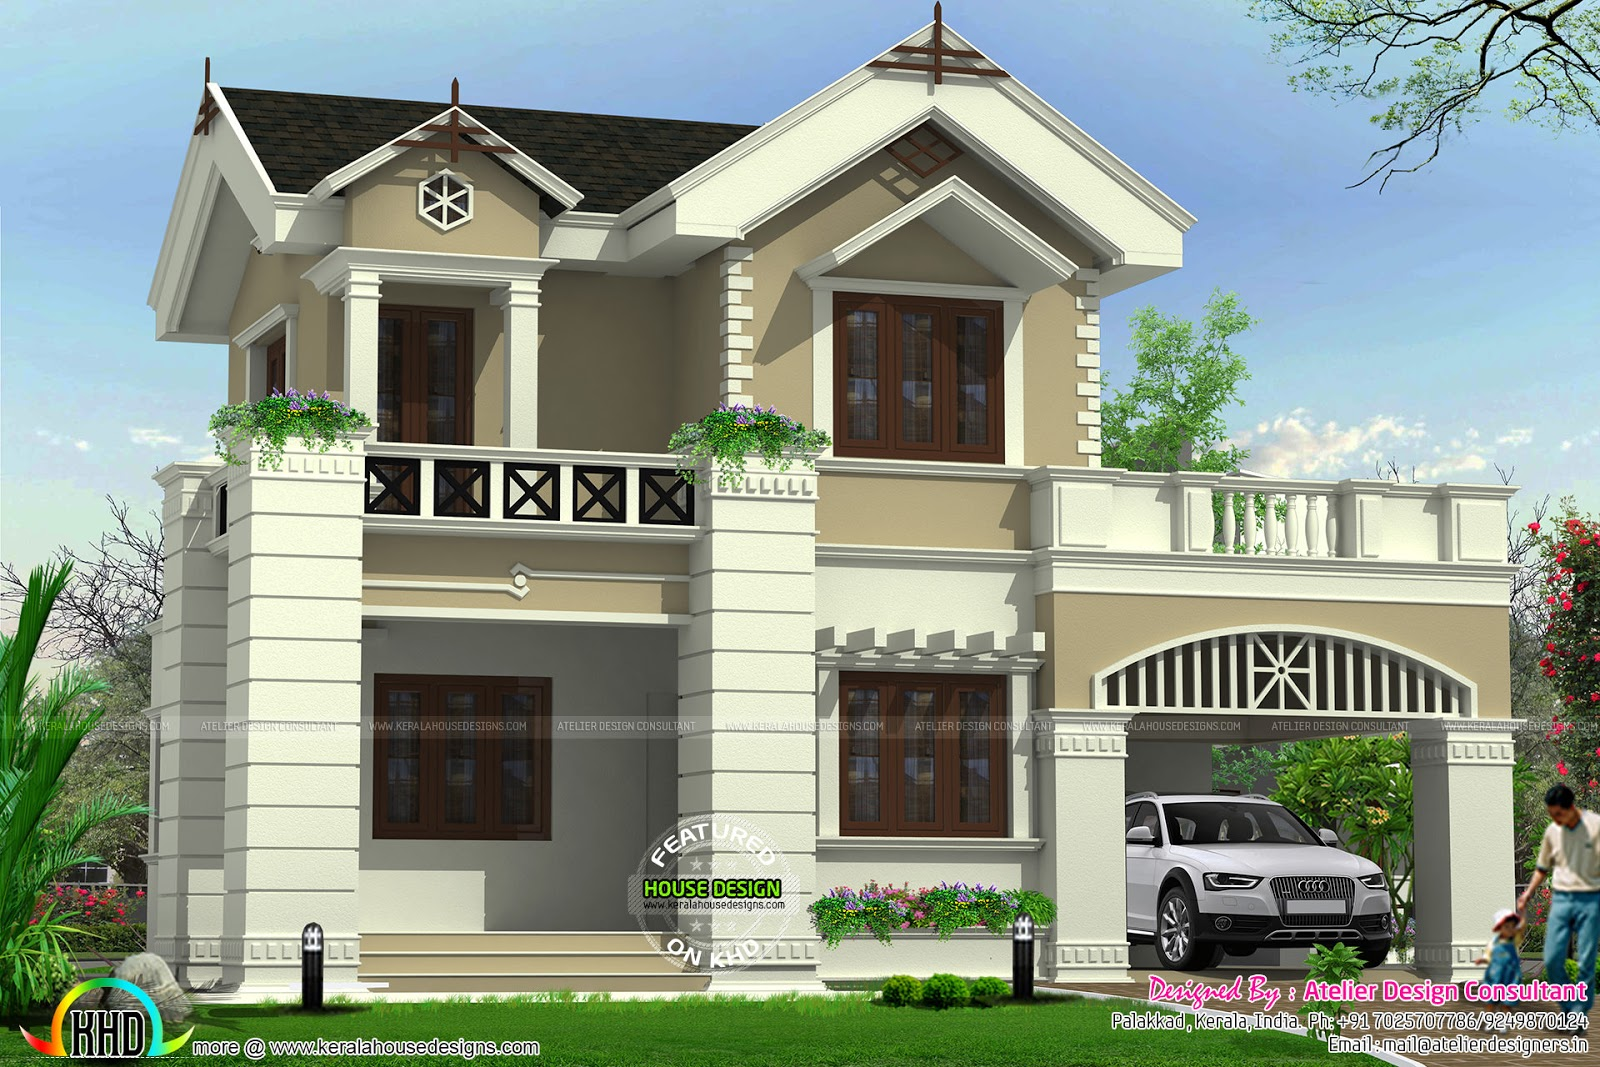 Cute victorian model home kerala home design and floor plans for House design collection